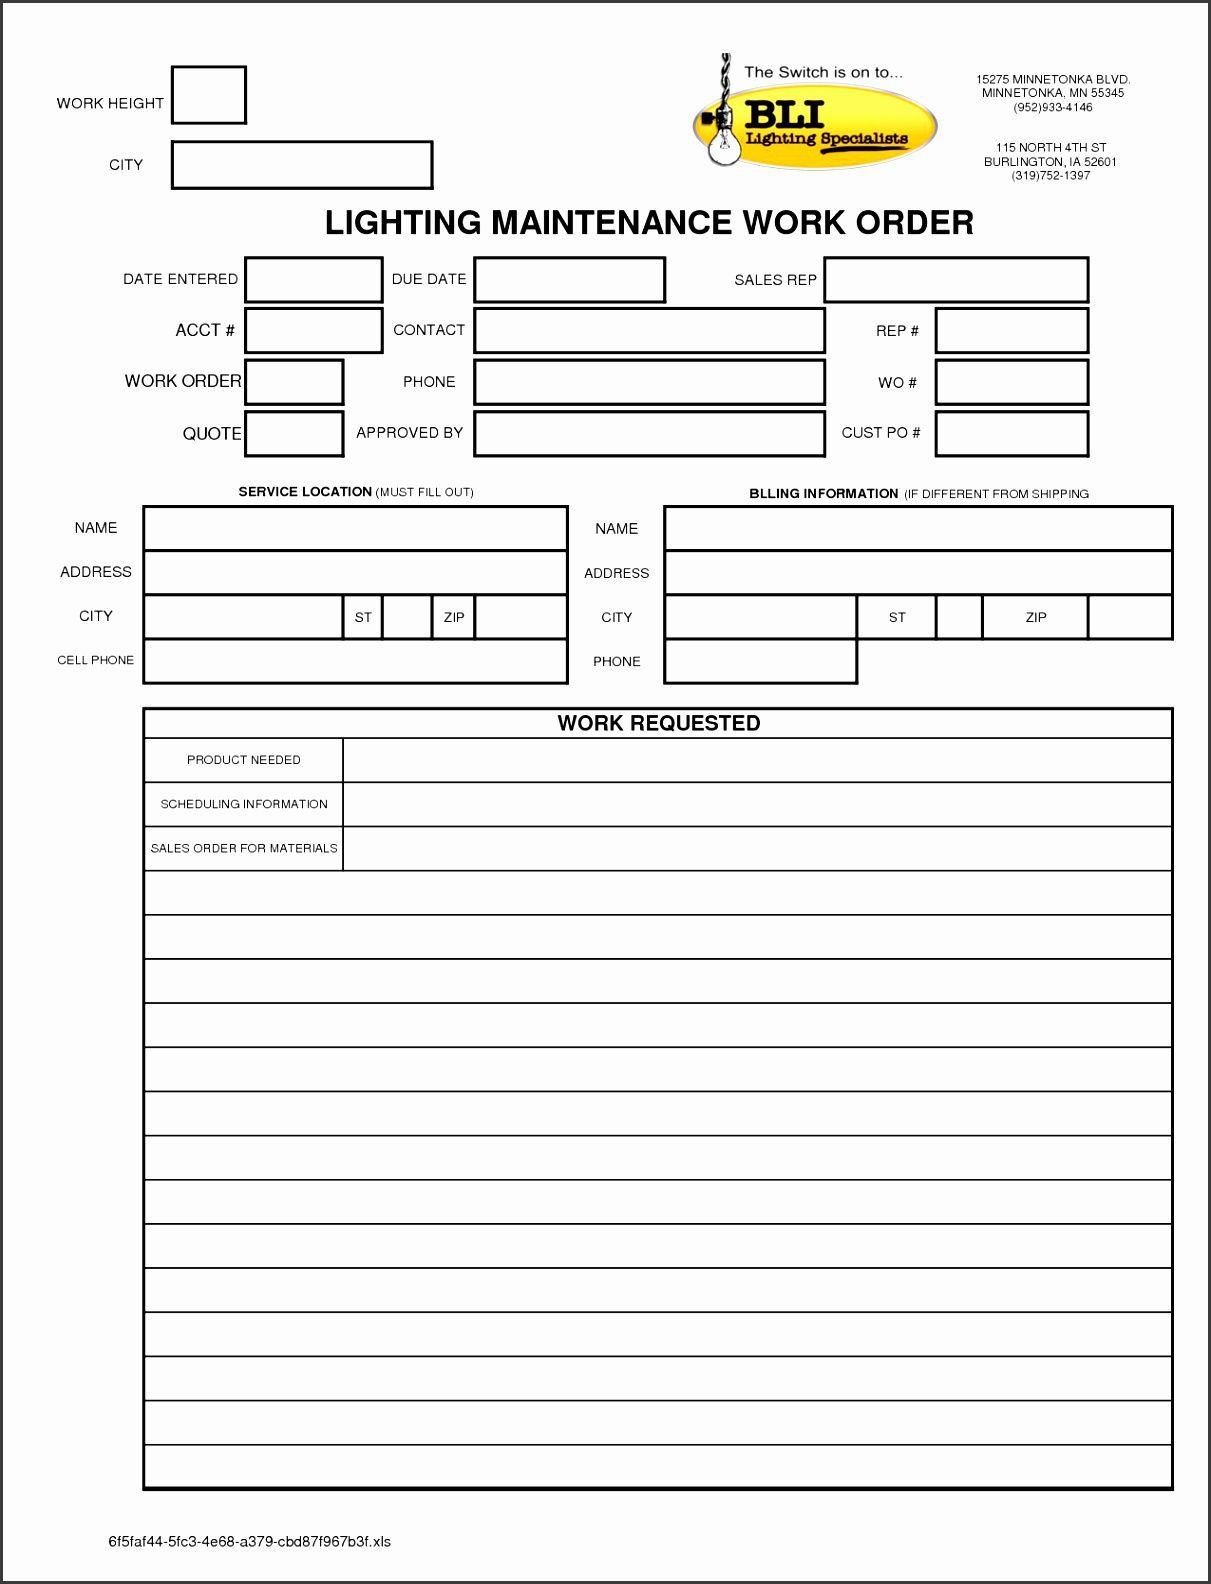 001 Archaicawful Maintenance Work Order Template Concept  Form Free SampleFull